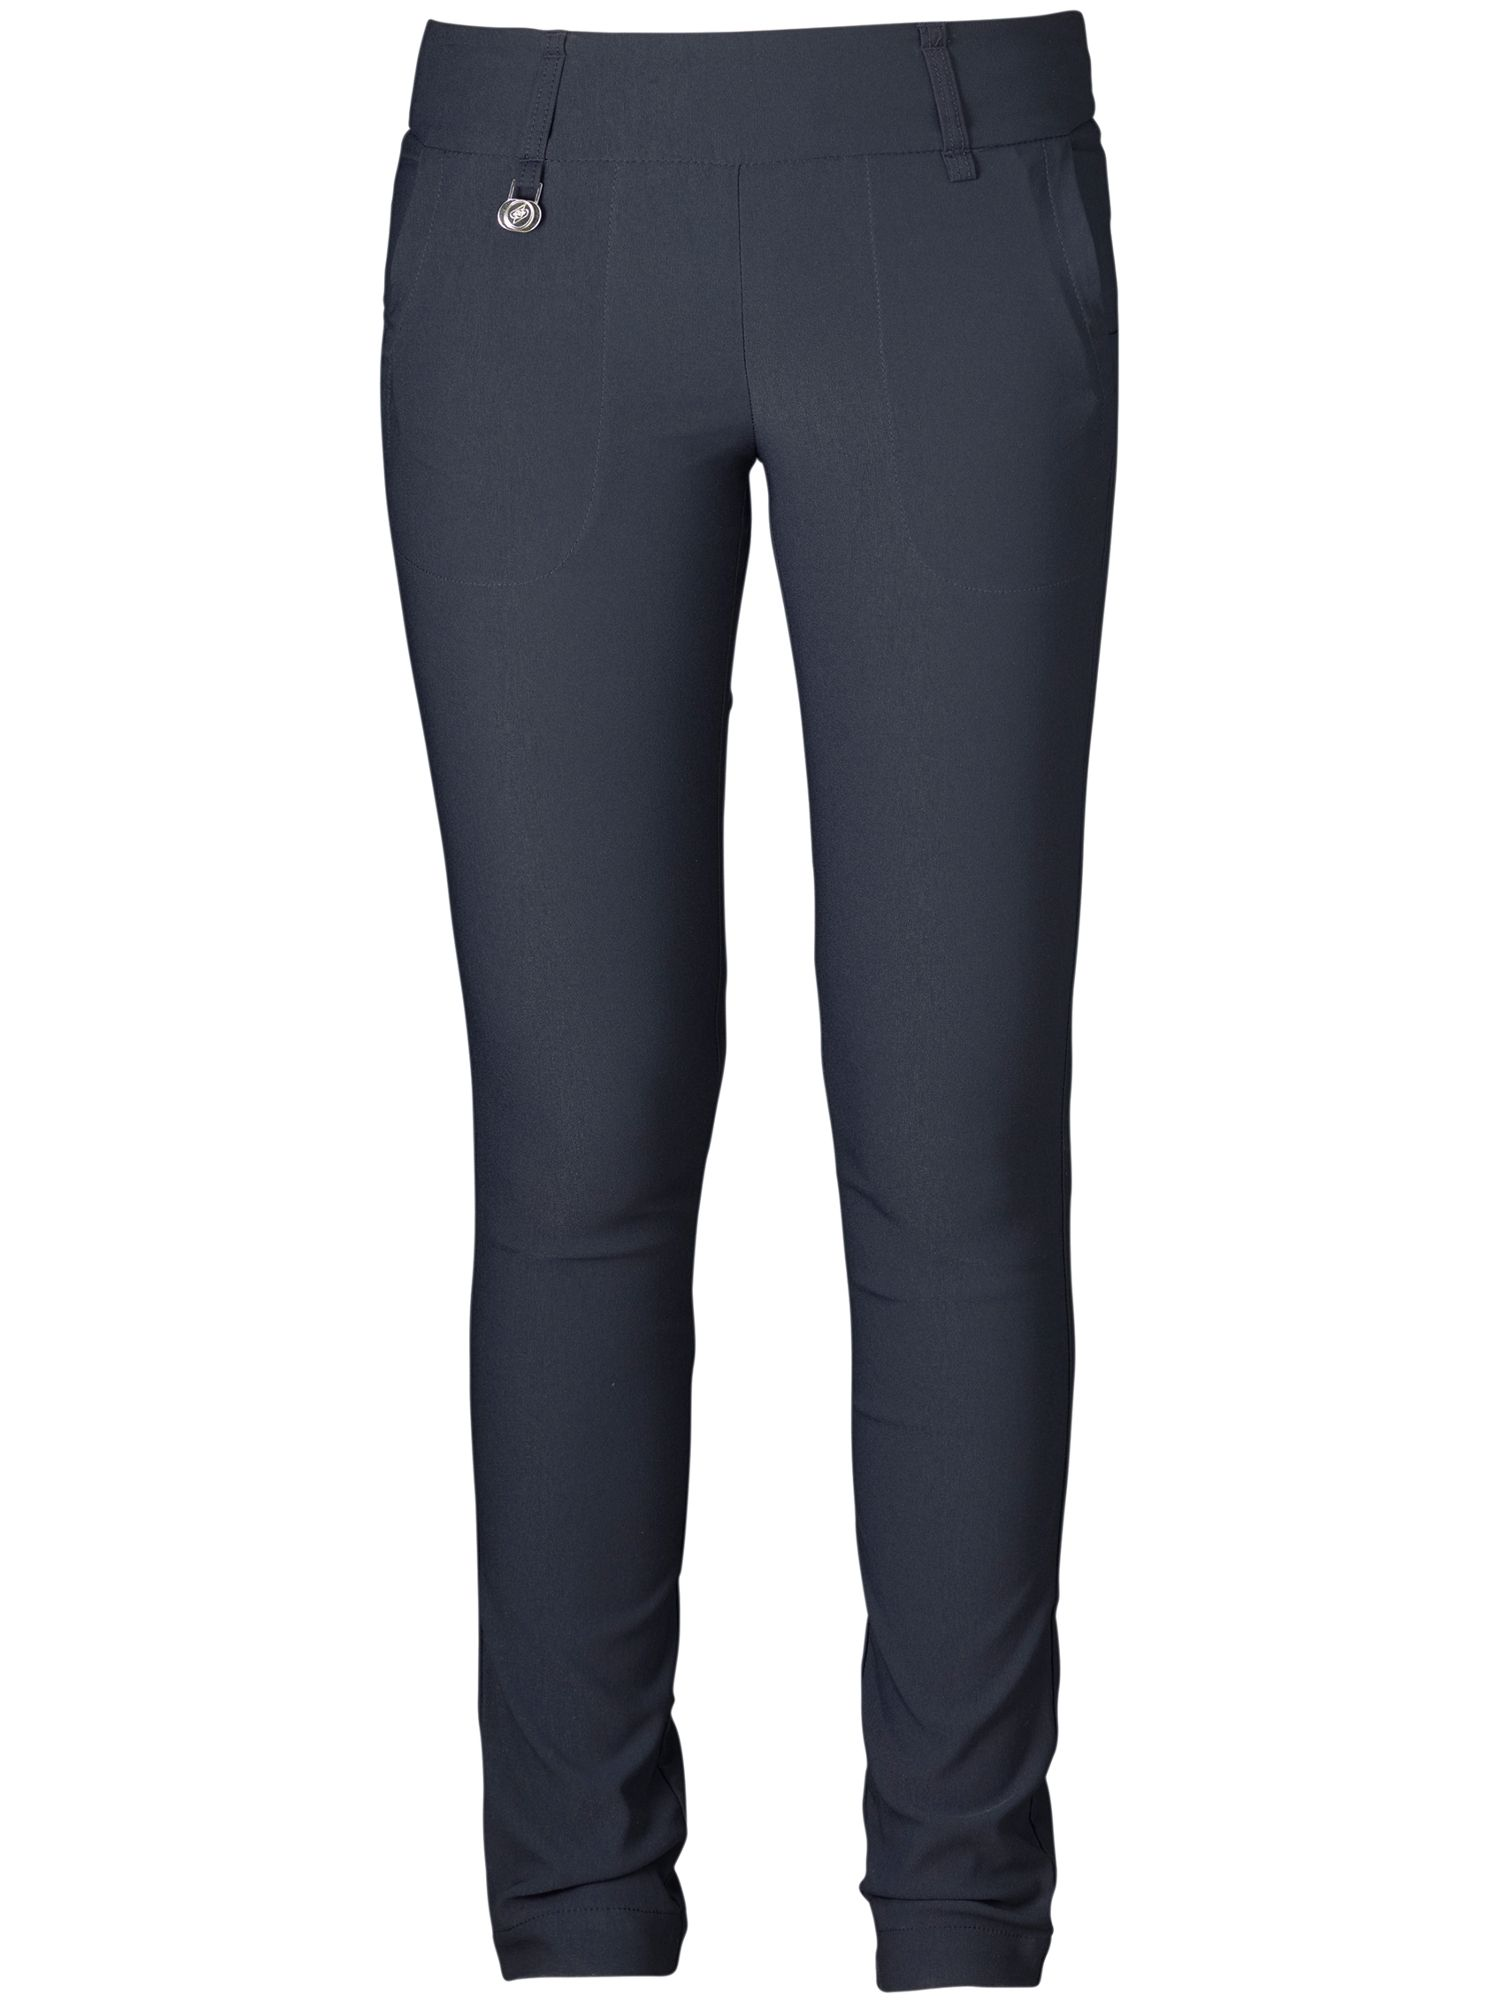 Daily Sports Magic Trousers, Blue